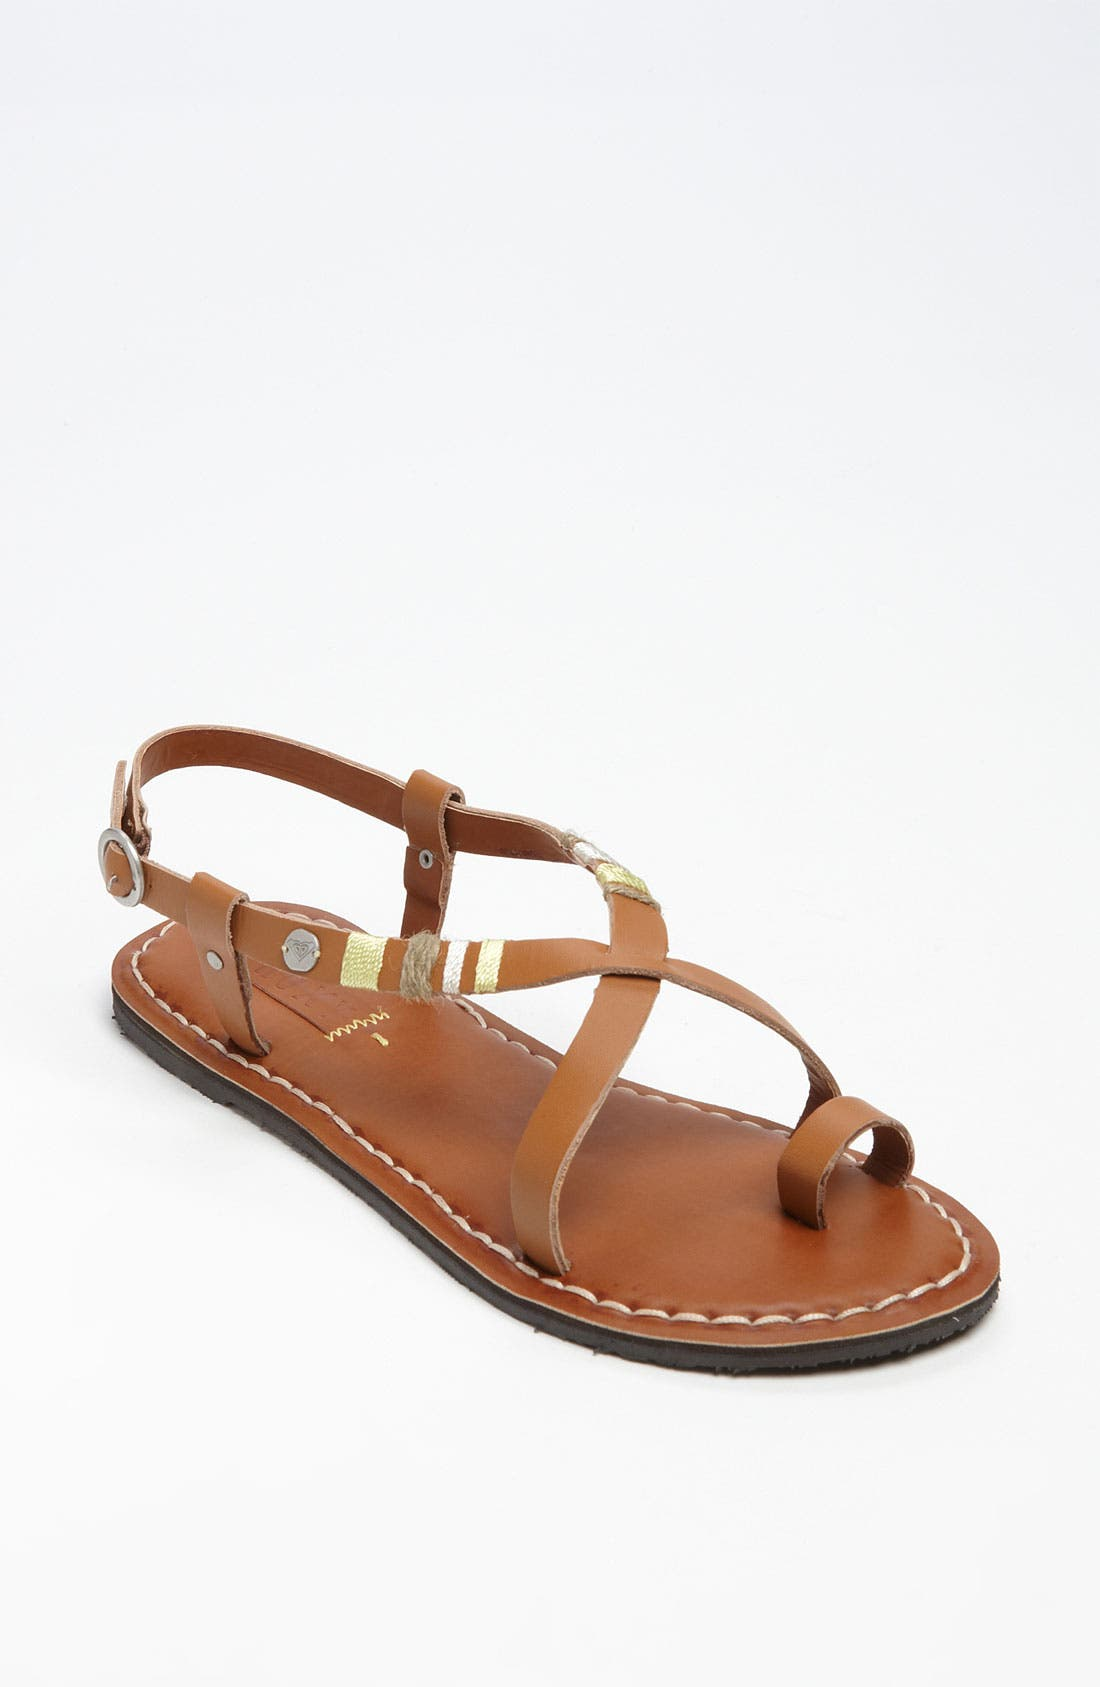 Alternate Image 1 Selected - Roxy 'Mojito' Sandal